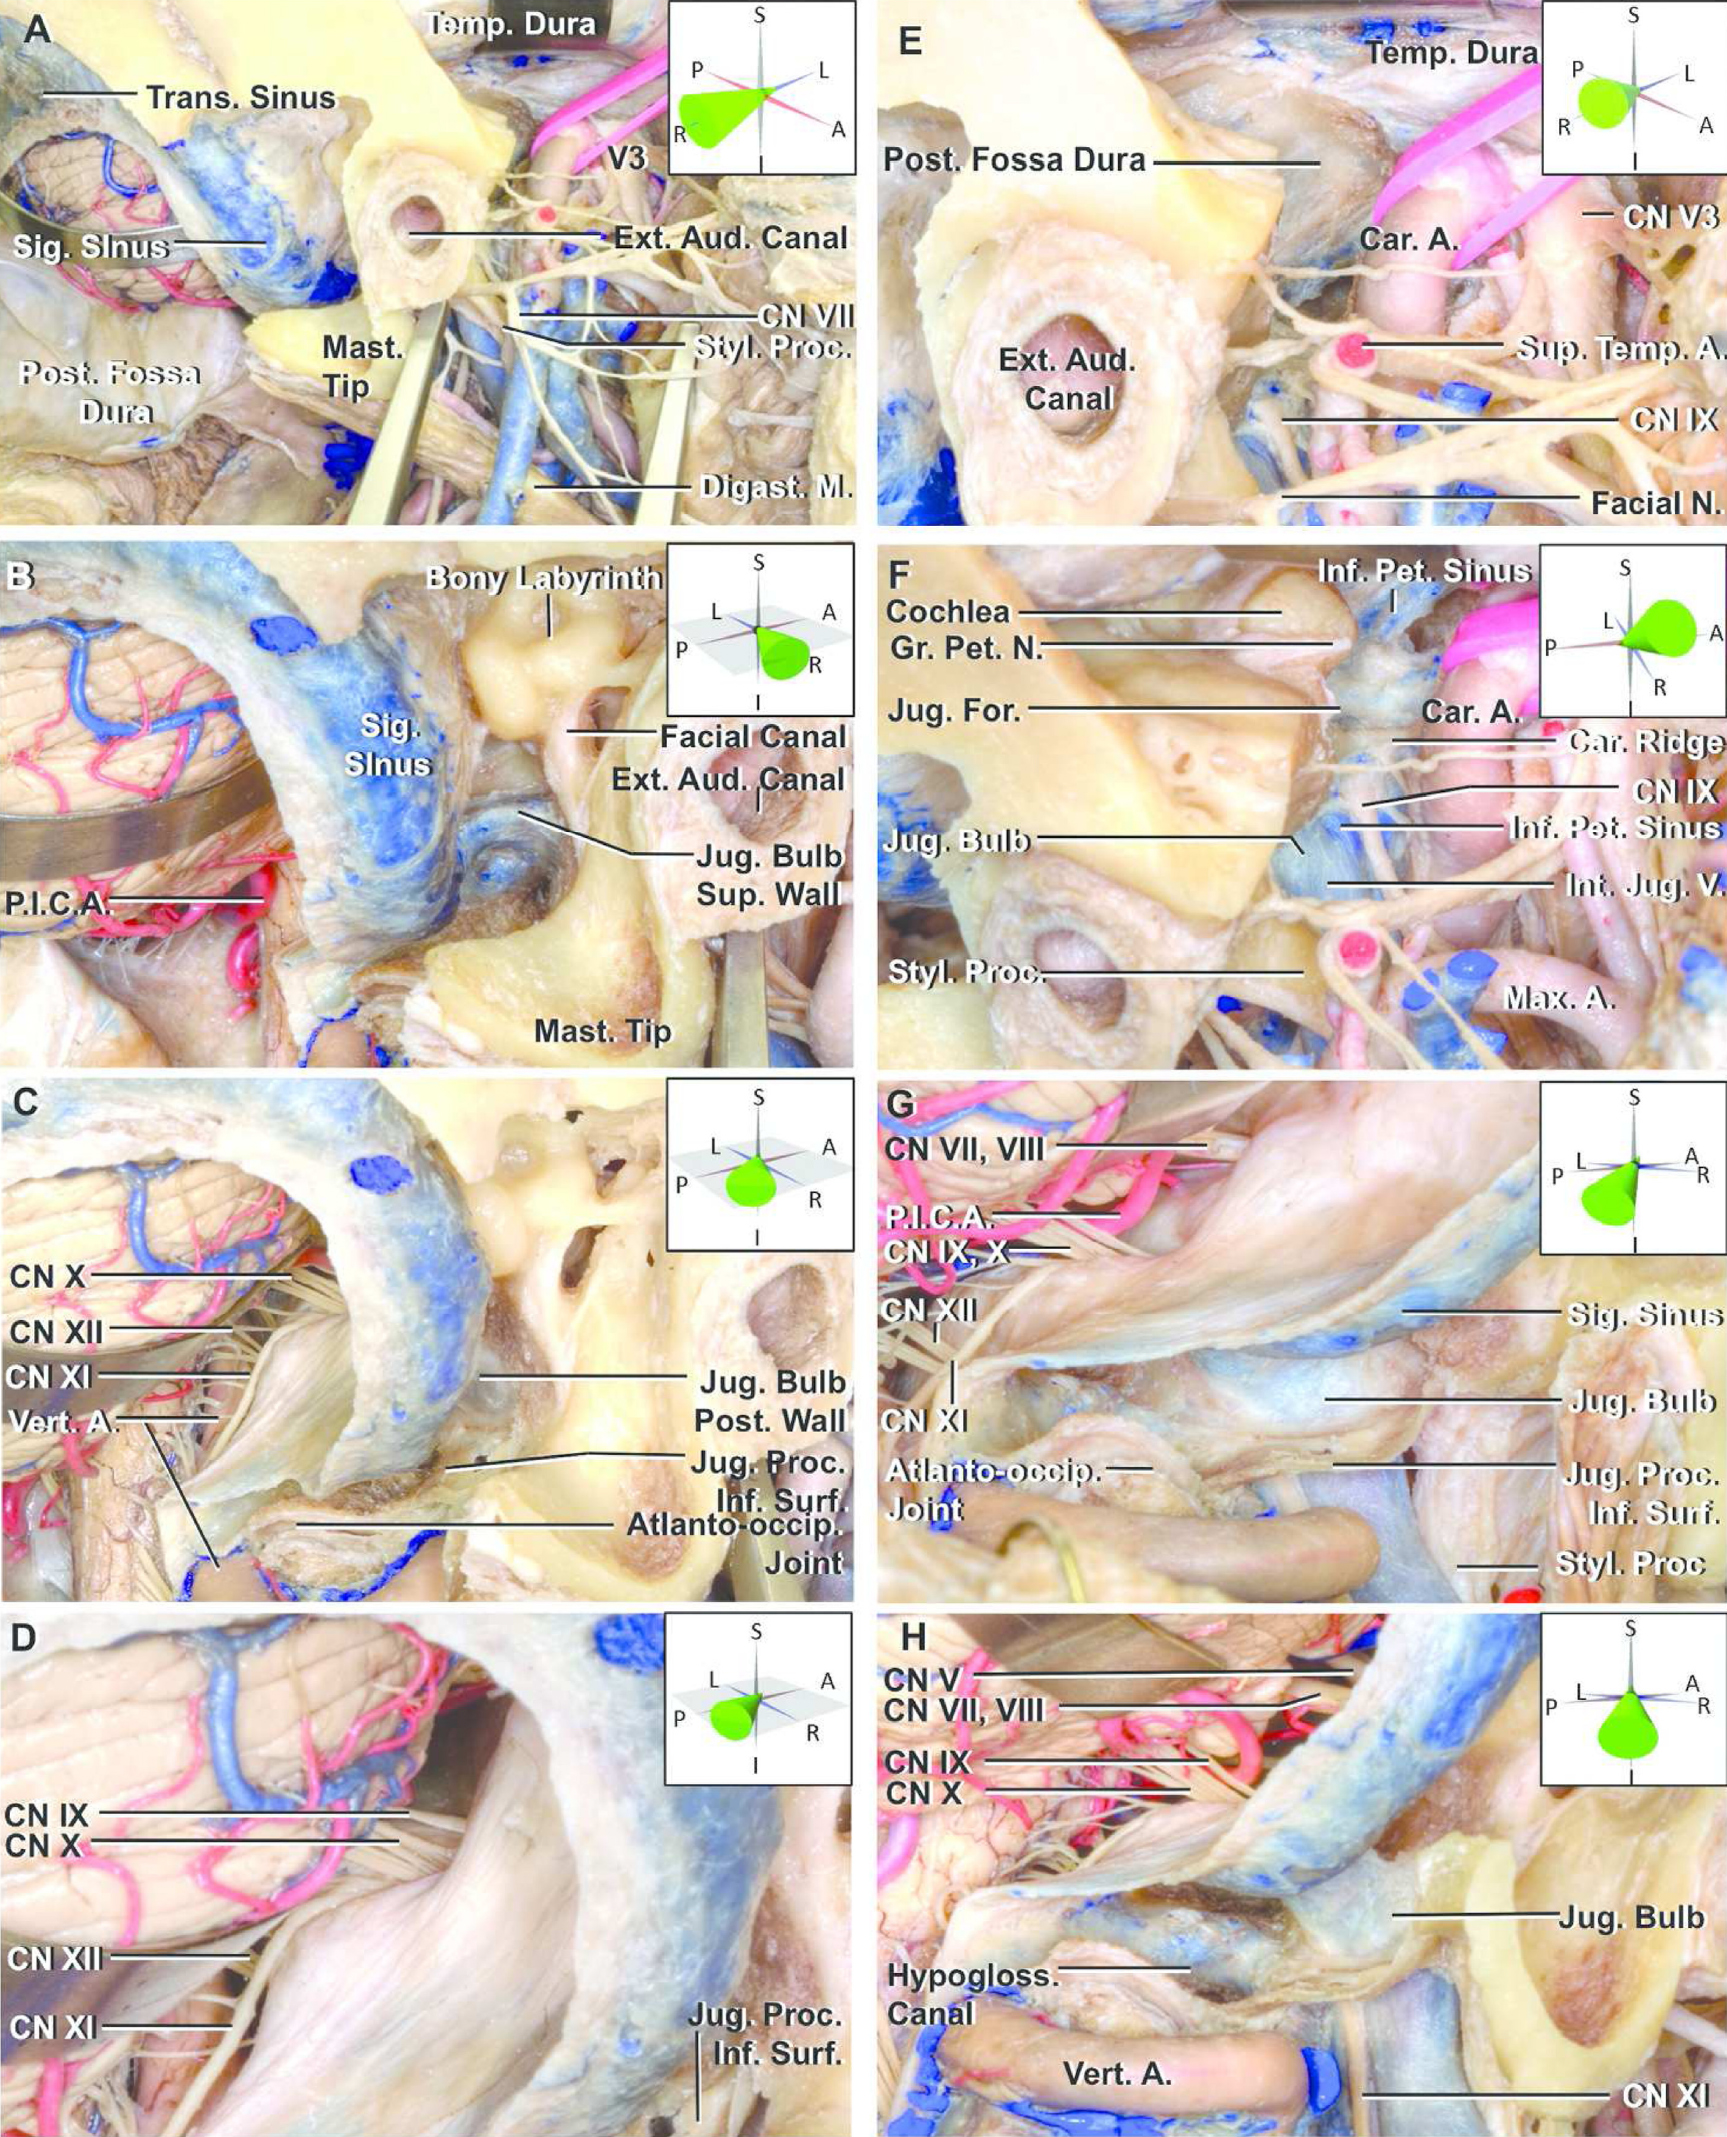 Figure 5. Multi-approach exposure of the jugular foramen. (A–H) The far lateral, preauricular transtemporal infratemporal, and transmastoid infralabyrinthine exposures have been completed on the right side to show the extent of exposure of the jugular bulb that can be achieved without resection of the external ear canal and translocation of the facial nerve. The parotid has been removed to make it easier to see the facial nerve and the area around the jugular foramen. The angle of view of each figure is shown in the insert using 3D coordinate axes. (A) Lateral view. The mastoid tip, styloid process, and external ear canal are obstacles to exposing the jugular foramen. (B) Posterolateral exposure viewed parallel to the external ear canal. The superior and lateral surfaces of the jugular bulb can be identified from this angle. In this view, the mastoid tip does not block access to the lateral aspect of the jugular bulb. However, the facial canal blocks access to the jugular bulb. (C) A 45° posterolateral view. The jugular process has been removed while preserving its inferior surface. Removing the jugular process exposes the posterior wall of the jugular bulb. (D) Rotating the view posteriorly provides a view of cranial nerves (CNs) IX, X, and XI entering the dural roof of the jugular foramen. (E) Lateral view of the preauricular subtemporal infratemporal fossa approach. The floor of the middle fossa has been removed and the medial half of the vaginal process of the tympanic part of the temporal bone drilled to expose the sigmoid sinus at the anterior edge of the jugular foramen. The parotid gland has been removed to facilitate the view of the anterior edge of the jugular foramen. (F) Superolateral view. The floor of the middle fossa lateral to the cochlea has been removed. The inferior petrosal sinus empties into the internal jugular vein just below the jugular bulb. The glossopharyngeal nerve descends through the dural glossopharyngeal meatus and turns downward lateral to the inferior petrosal sinus. (G) Lateral suboccipital (retrosigmoid) approach. This approach accesses the dural roof of the jugular foramen. Removing the jugular process of the temporal bone exposes the posterior and inferior surfaces of the jugular bulb. In this view, the vertebral artery partially blocks the view of the course of the accessory nerve. (H) View lateral to that shown in panel G. The intracranial, posterior/inferior surfaces of the jugular foramen, and hypoglossal canal have been exposed. The course of the accessory nerve is visible without translocation of the vertebral artery. A., artery; Atlanto-occip., atlanto-occipital; Aud., auditory; Car., carotid; Dig., digastric; Ext., external; Gr., greater; Hypogloss., hypoglossal; Inf., inferior; Int., internal; Jug., jugular; M., muscle; Mast., mastoid; Max., maxillary; N., nerve; Pet., petrosal; P.I.C.A., posterior inferior cerebellar artery; Post., posterior; Proc., process; Sig., sigmoid; Styl., styloid; Sup., superior; Surf., surface; Temp., temporal; Trans., transverse; V., vein; Vert., vertebral. (Images courtesy of AL Rhoton, Jr.)